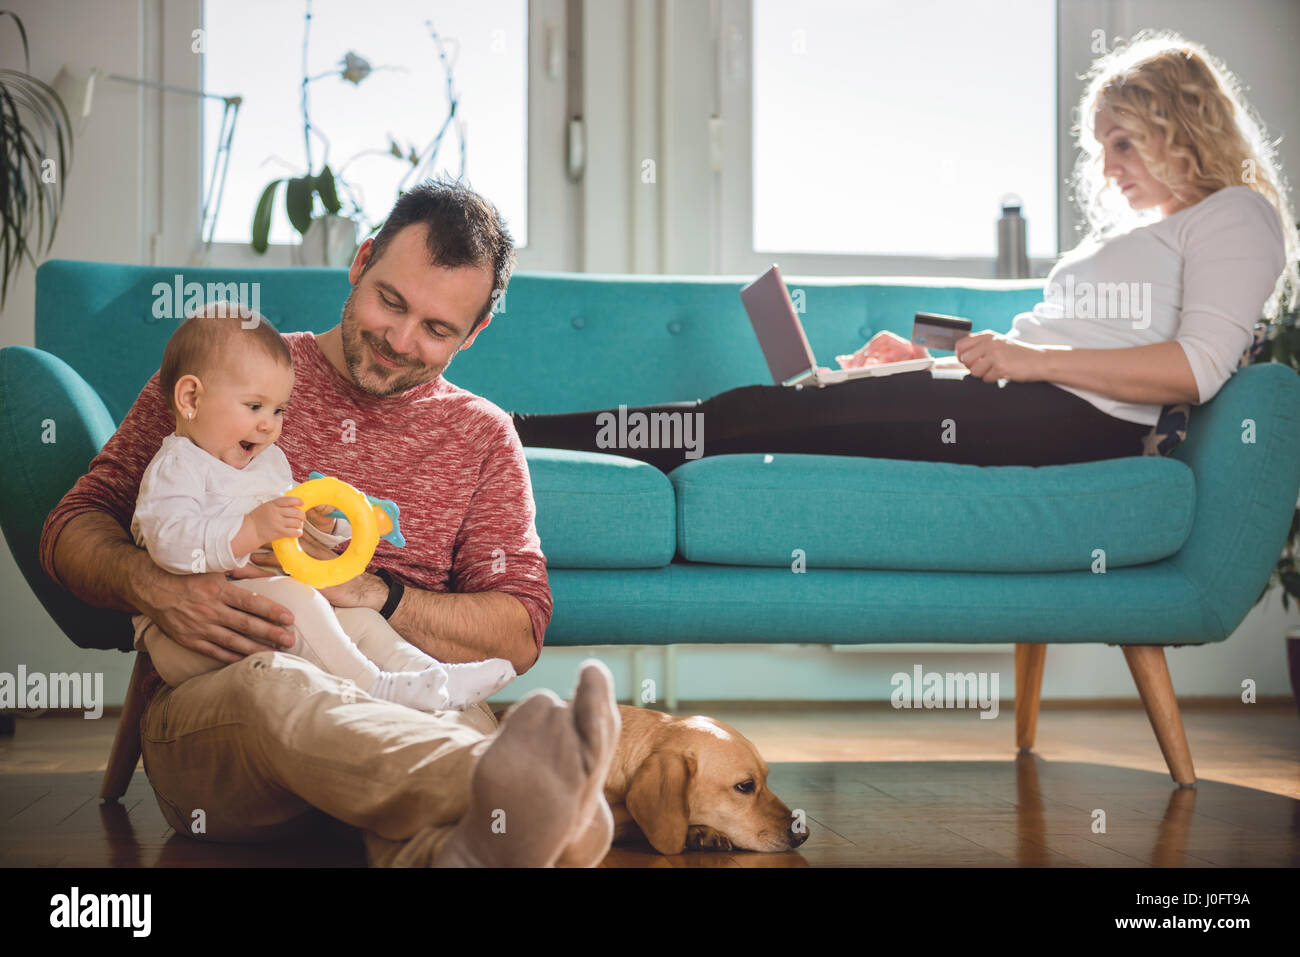 Father sitting on the floor and holding baby in his arms while wife sitting on sofa and doing online shopping with - Stock Image